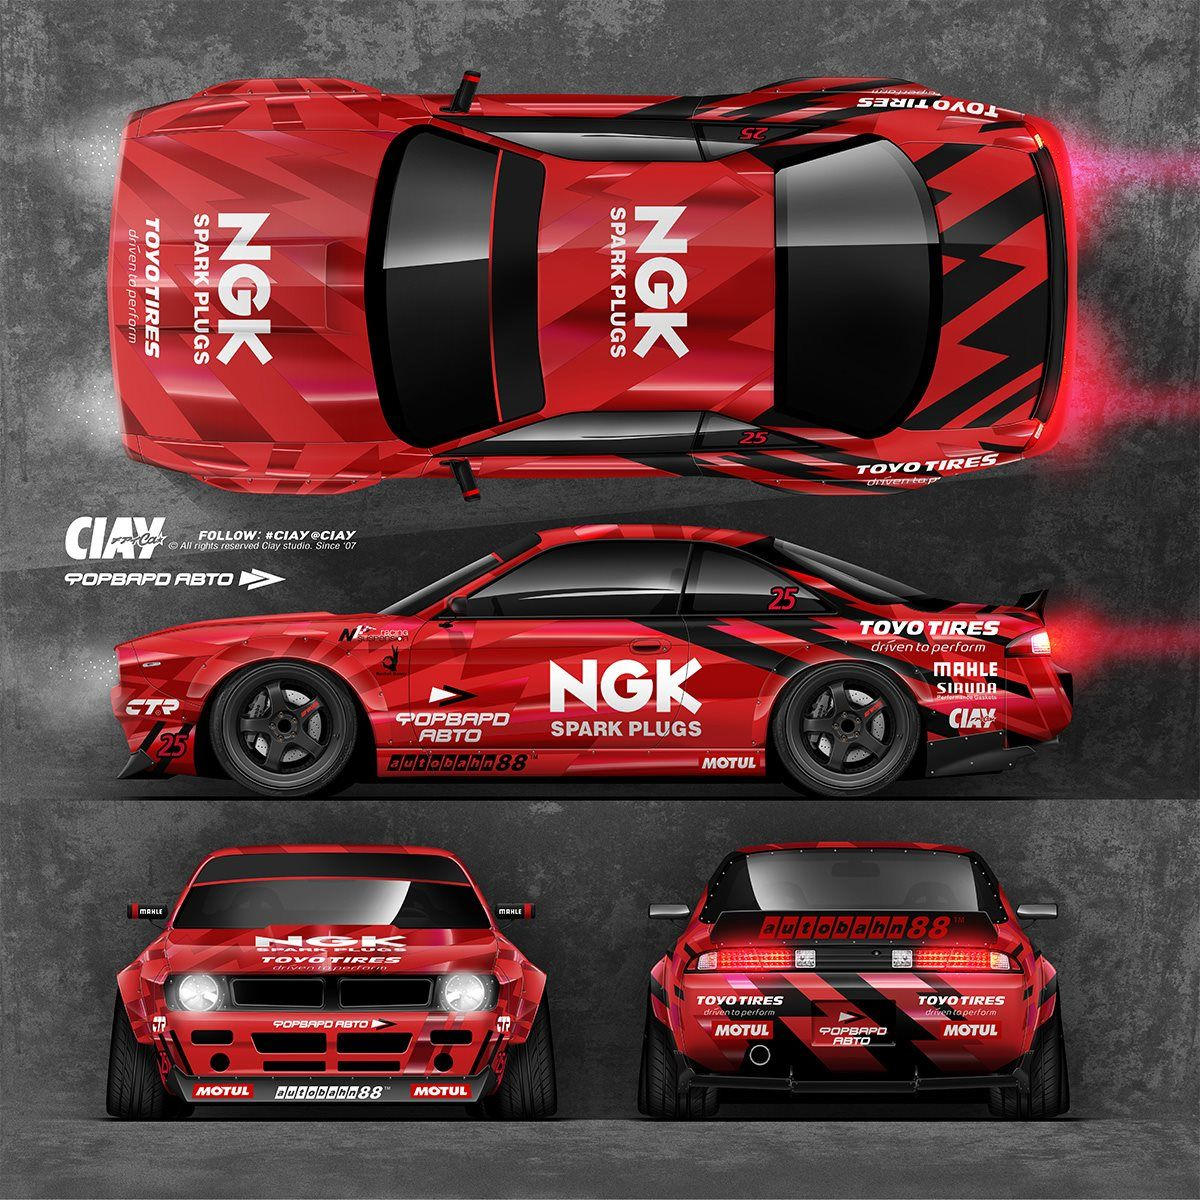 red ngk racing car livery we collect and generate ideas. Black Bedroom Furniture Sets. Home Design Ideas